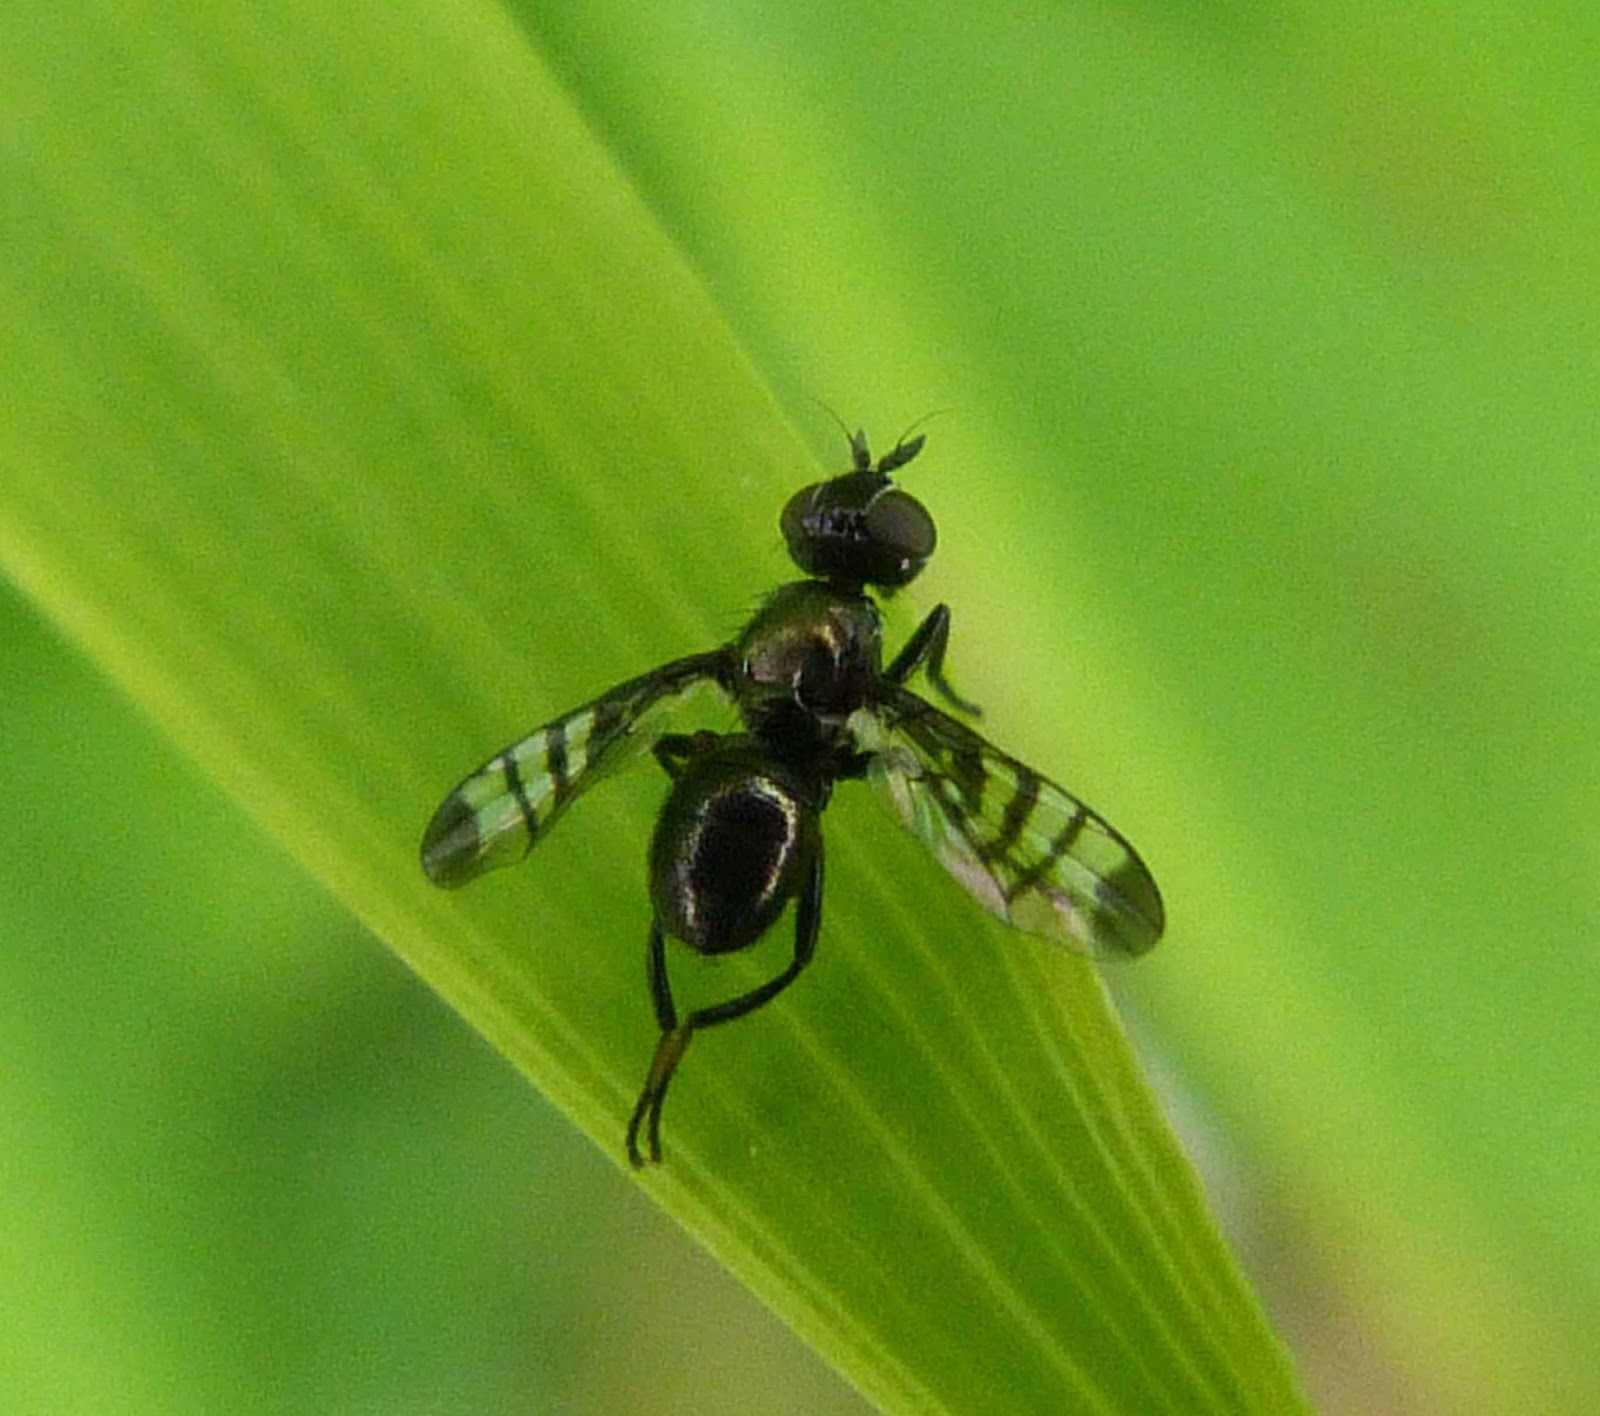 Winged insect photo